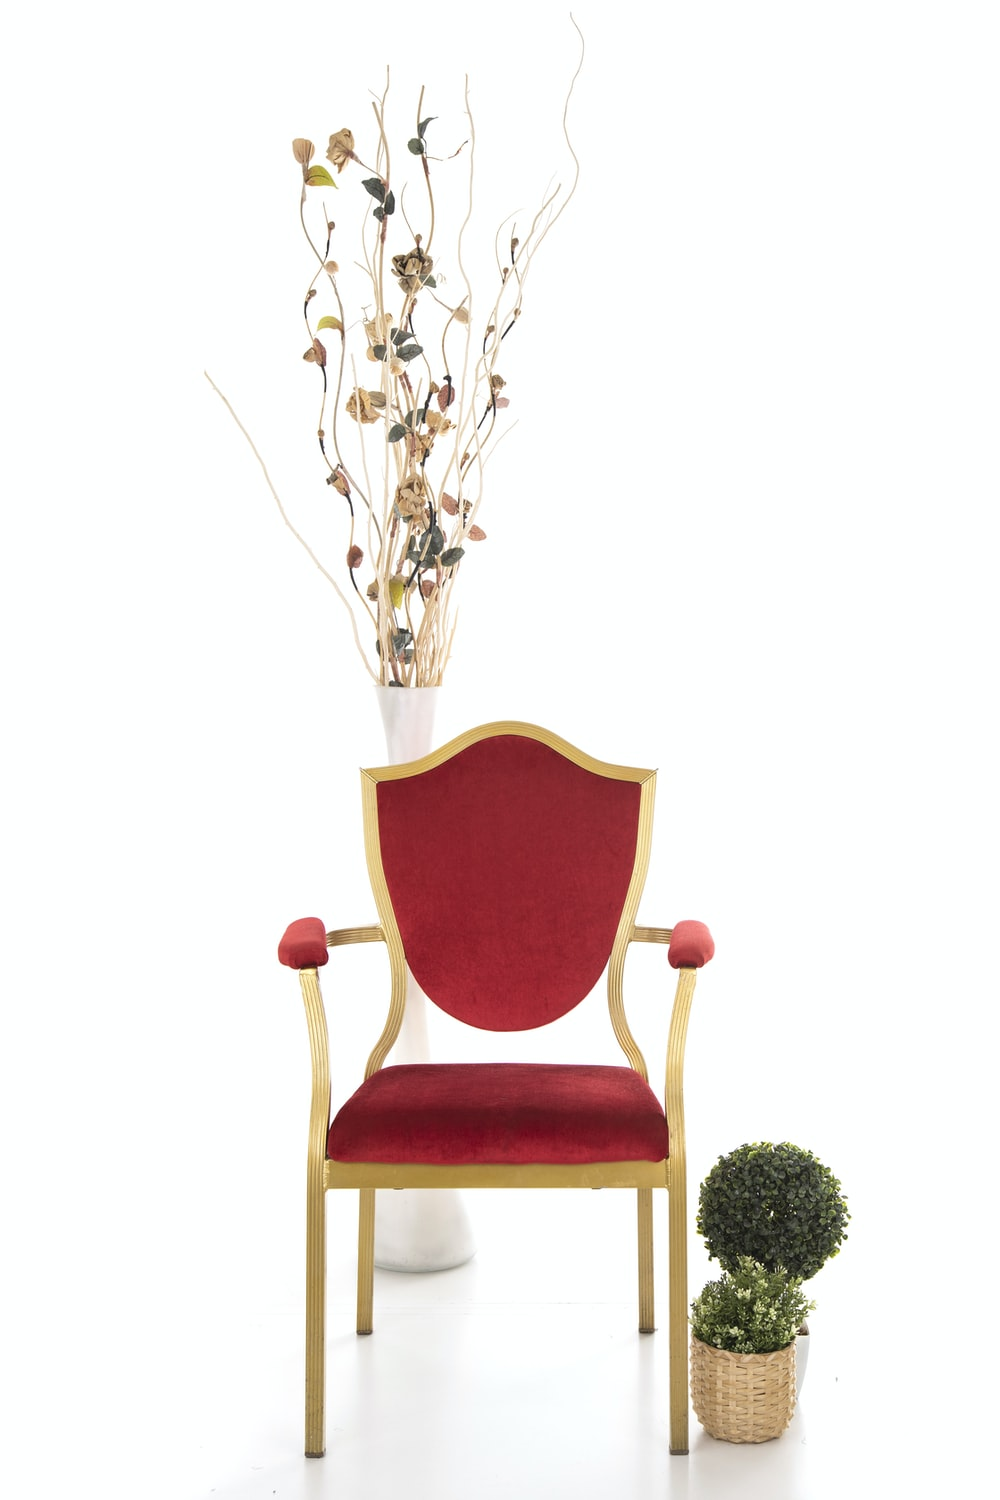 green plant on red chair